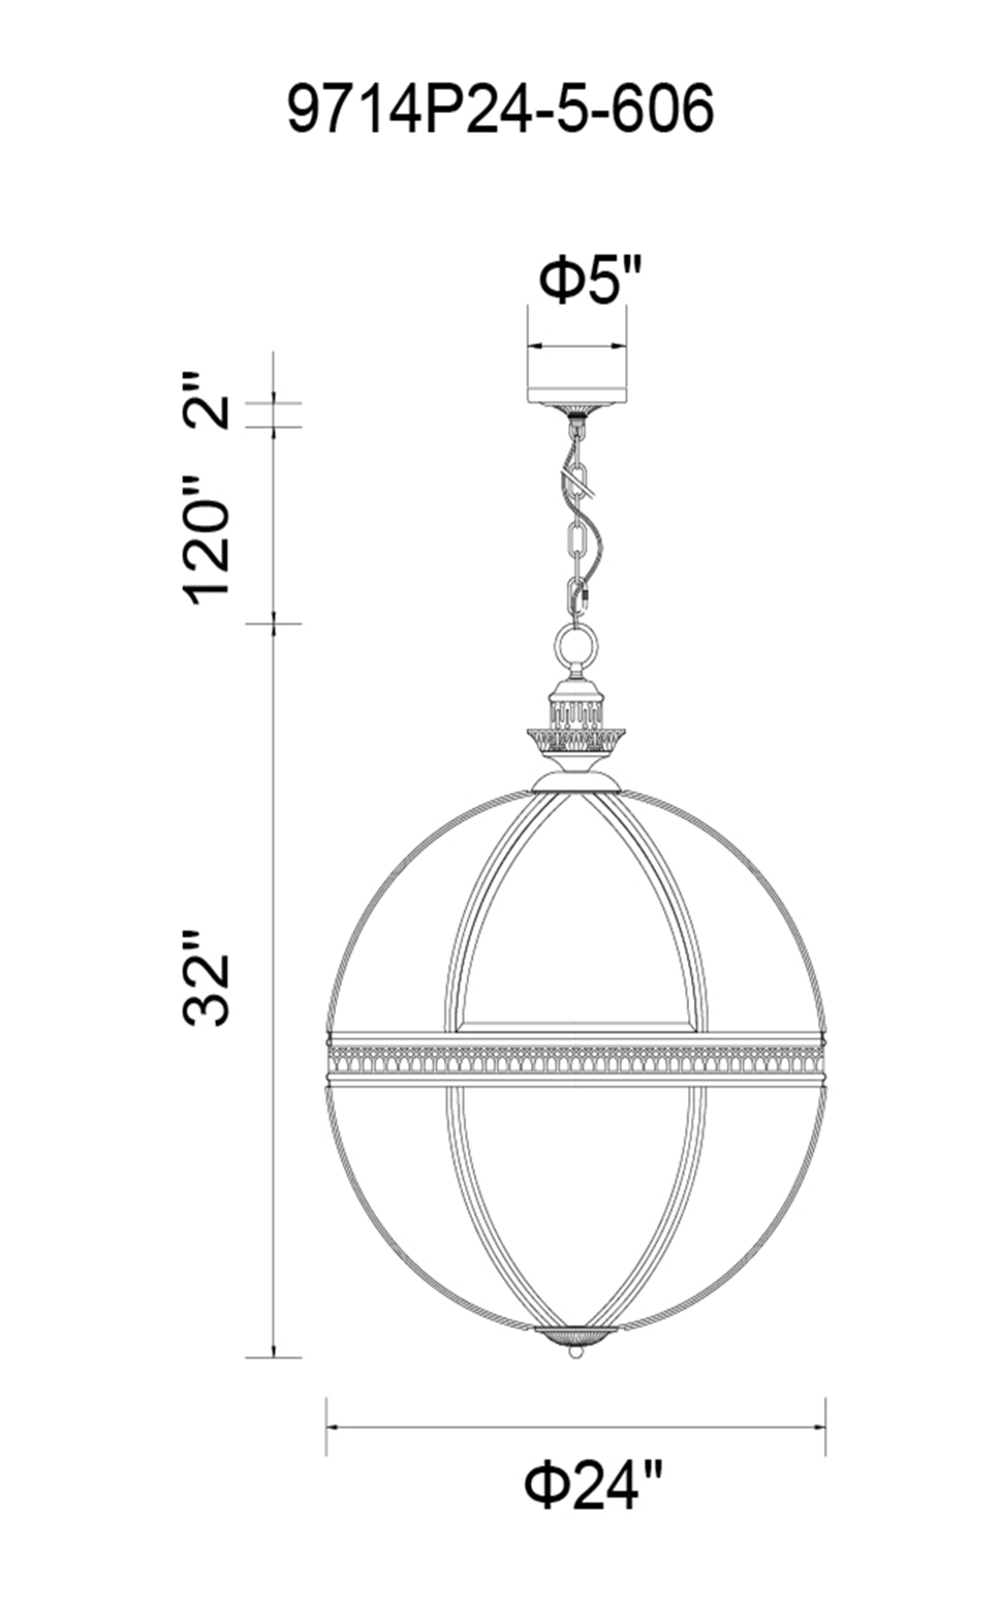 CWI Lighting Lune 5 Light Up Chandelier With Satin Nickel Model: 9714P24-5-606 Line Drawing